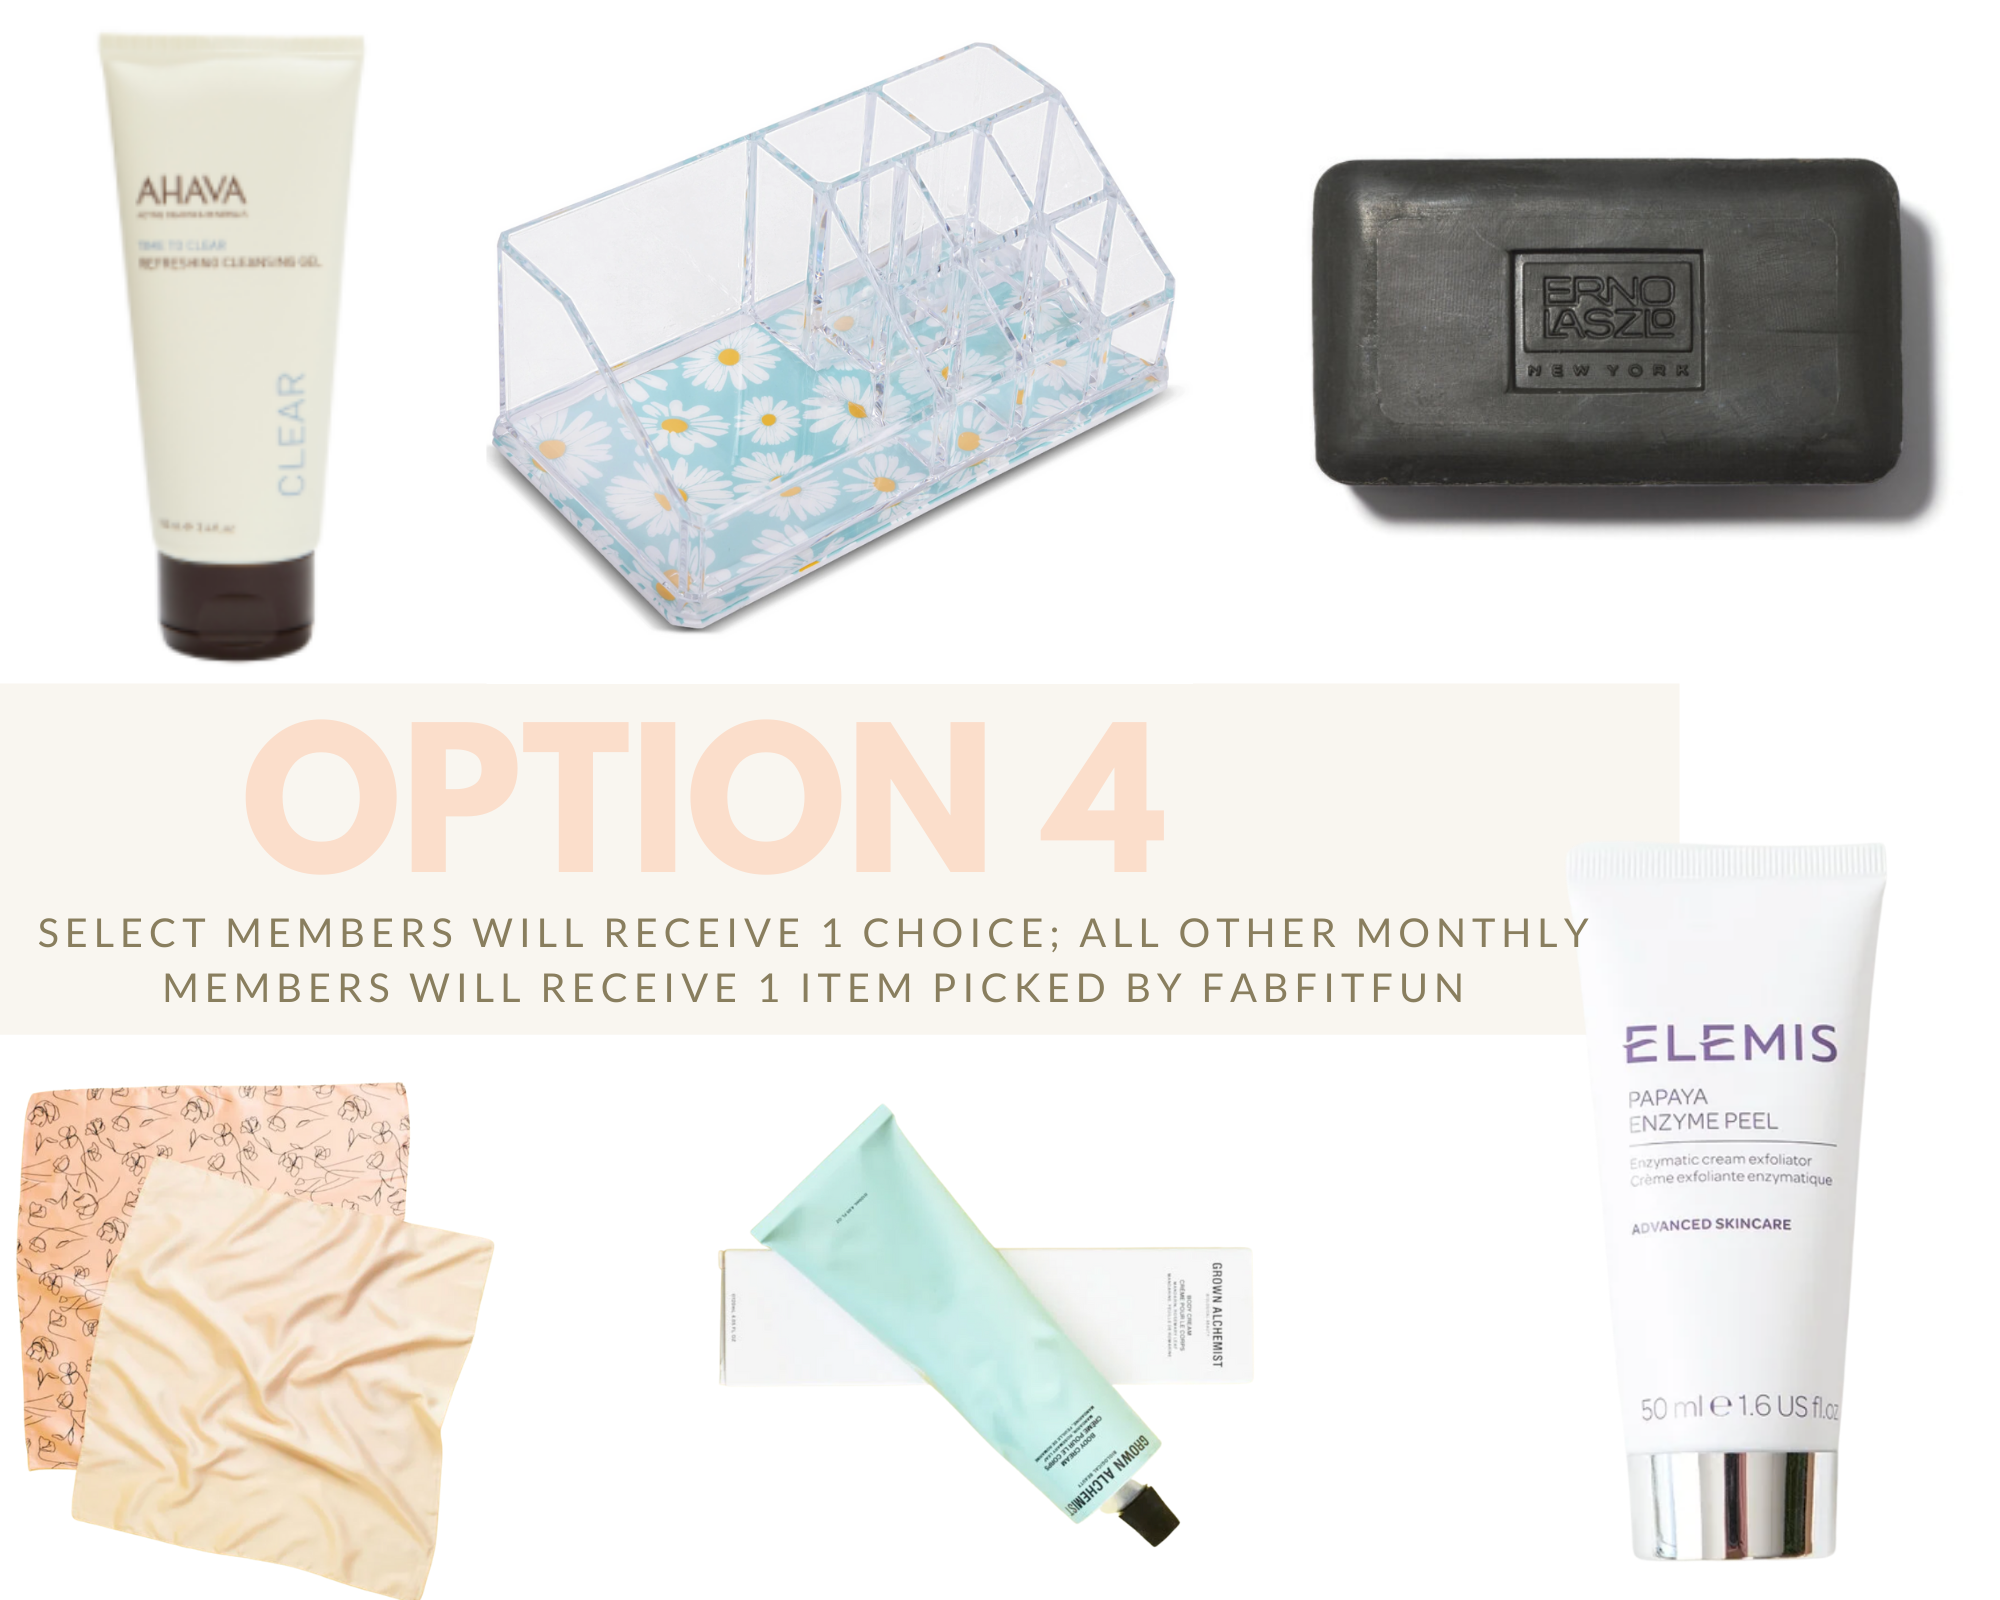 Spring FabFitFun Box by popular Monterey life and style blog, Haute Beauty Guide: image of AHAVA refreshing cleansing gel, Sorbus makeup organizer, Erno Laszlo sea mud deep cleansing bar, Lark & Ives hair scarf bundle, Grown alchemist body cream and ELEMIS papaya enzyme peel.